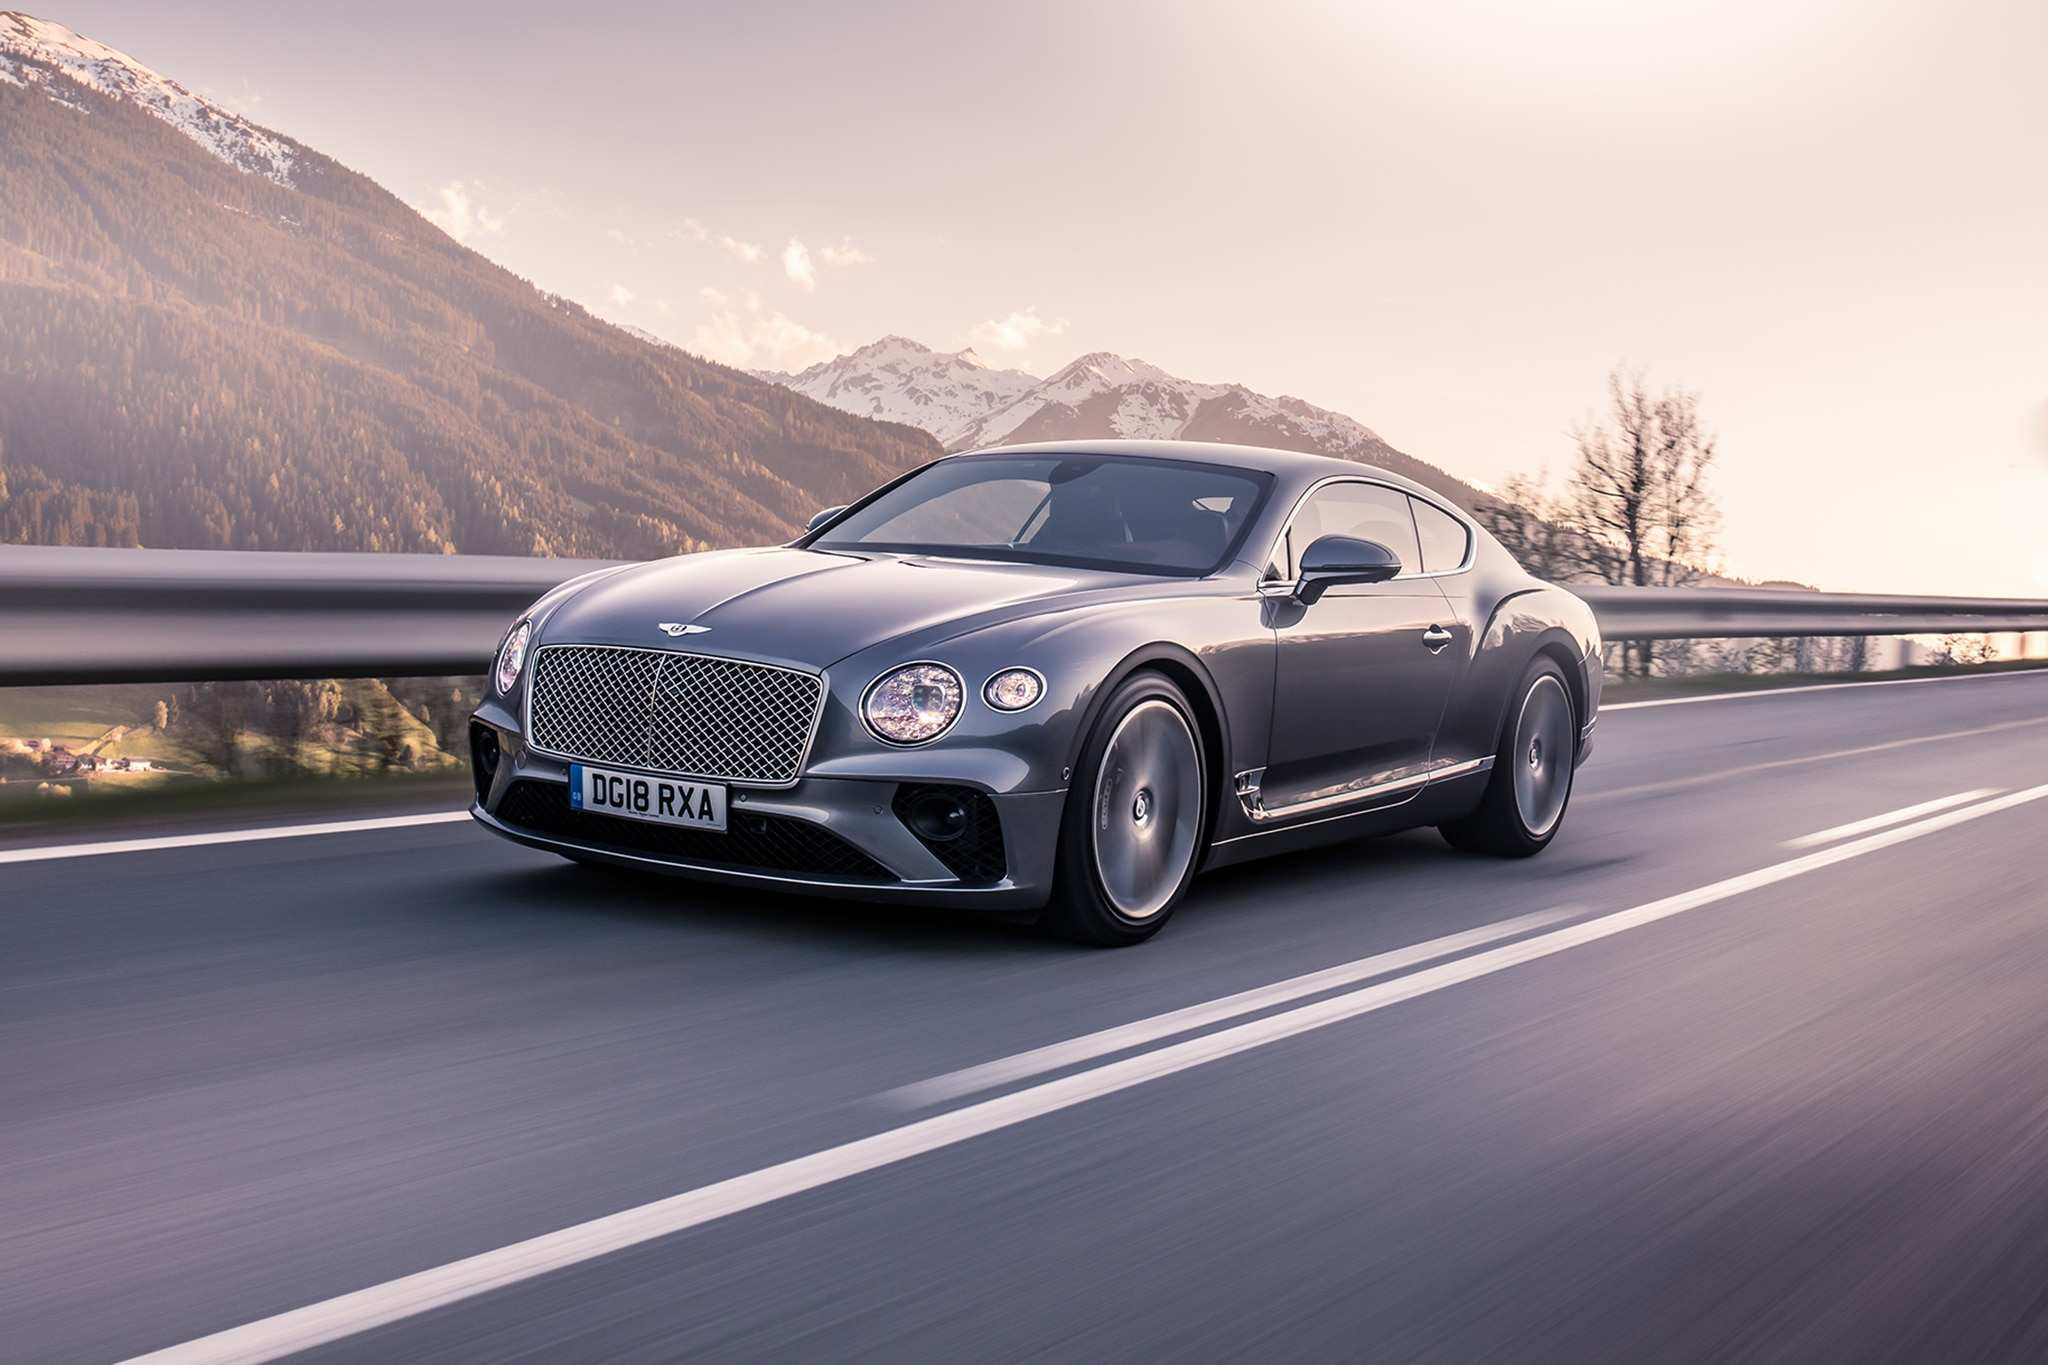 96 All New 2019 Bentley Continental Exterior and Interior by 2019 Bentley Continental